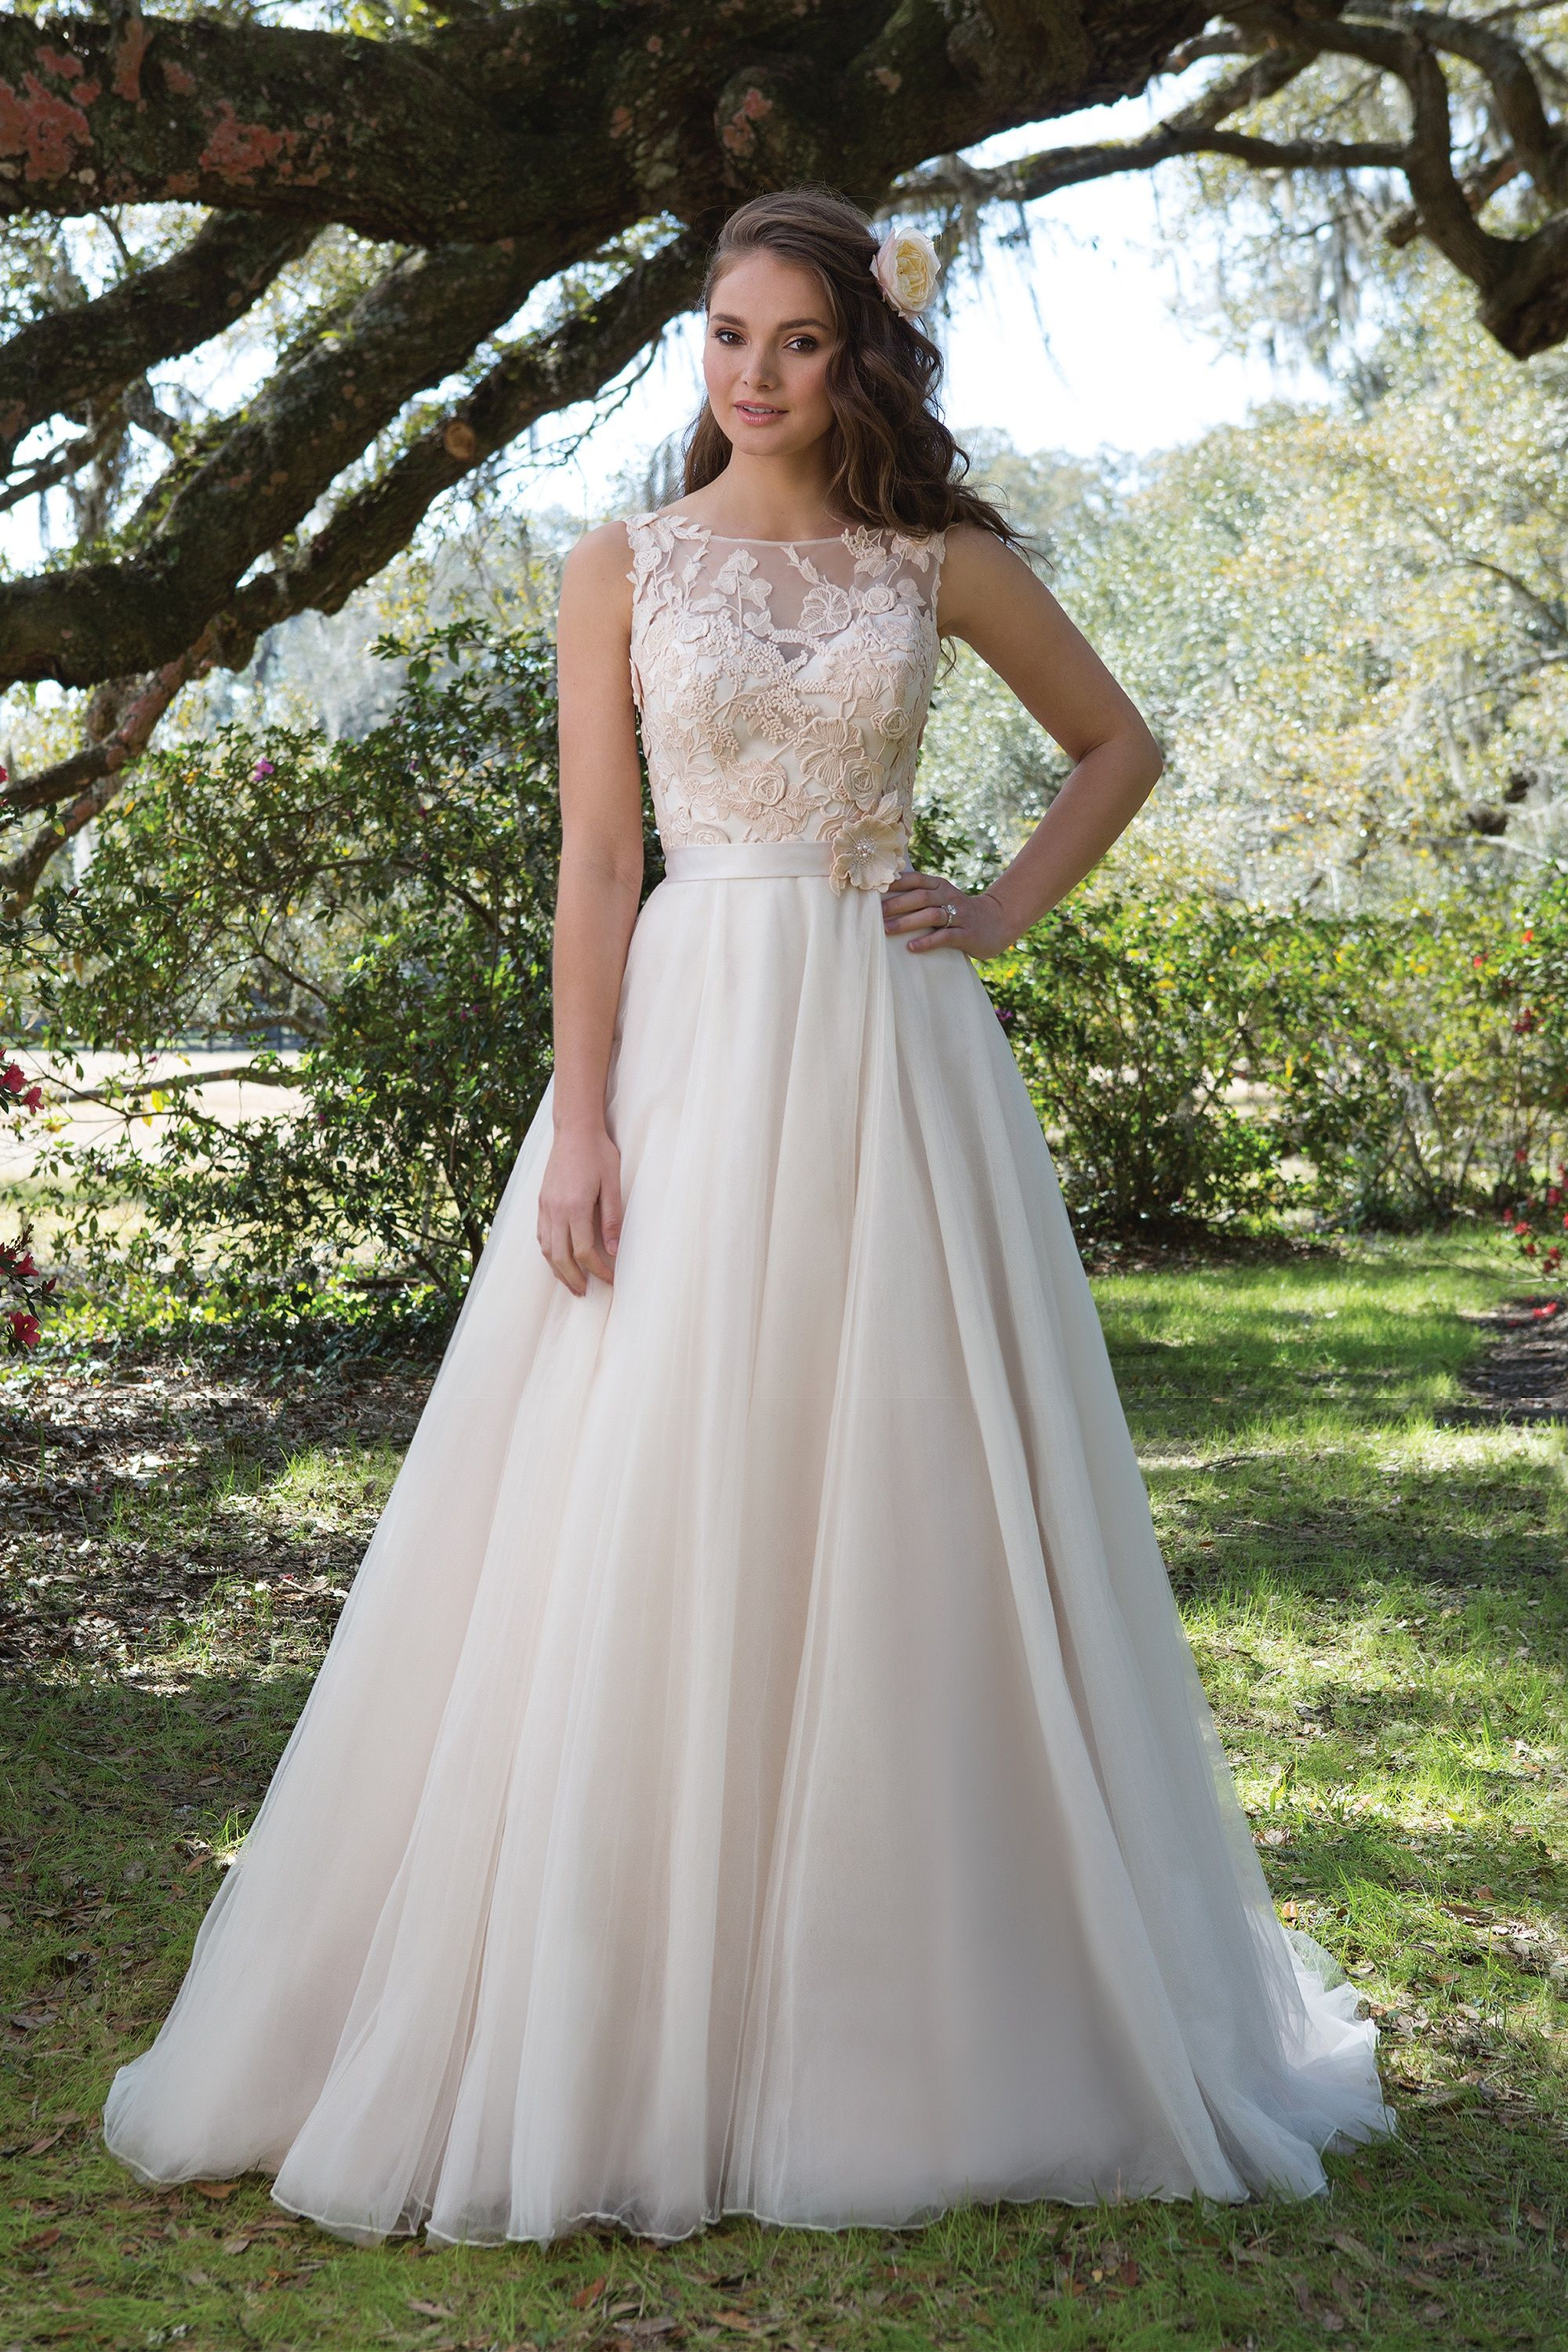 Embroidered lace wedding dress  Embroidered Lace Ball Gown with Sabrina Neckline Justin Alexander